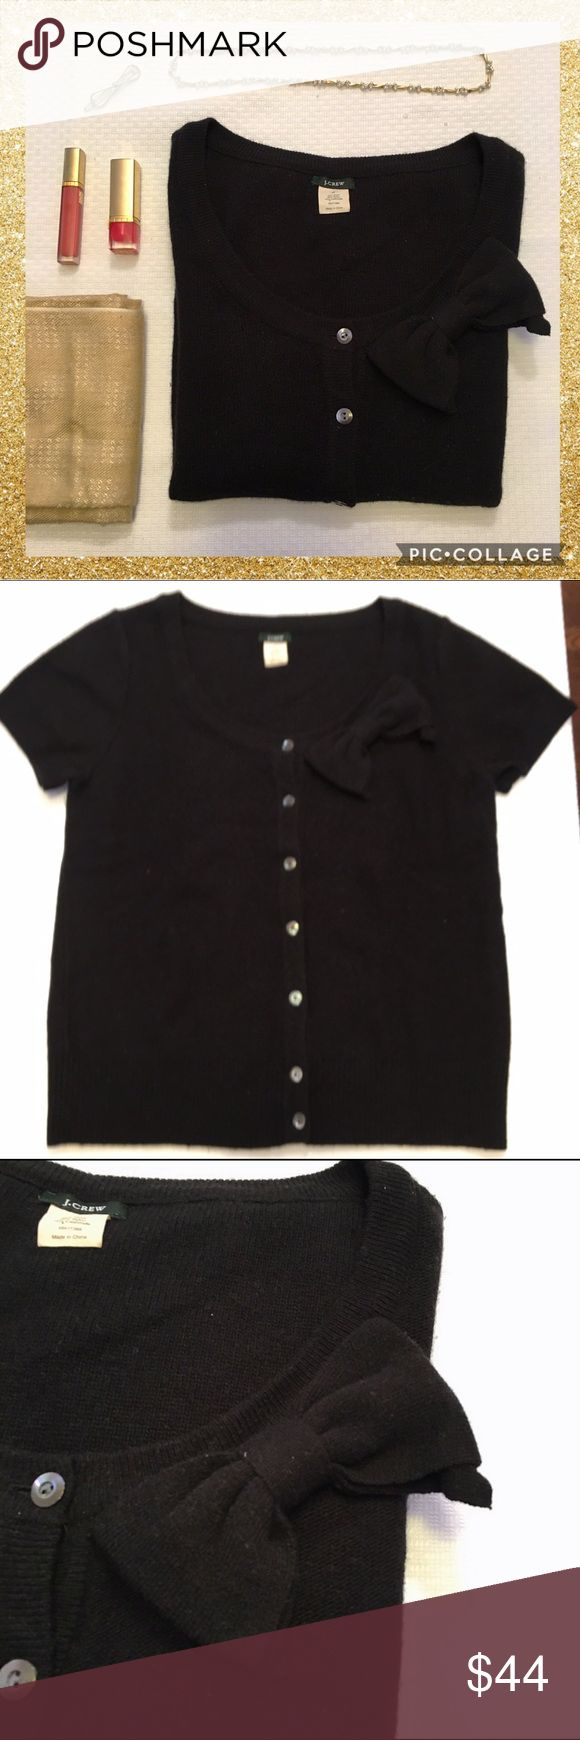 J. Crew short sleeve black bow cardigan Adorable black J. Crew short sleeve bow cardigan.  Wool and cashmere blend.  Has some polling as pictured in the 4th photo. J. Crew Sweaters Cardigans